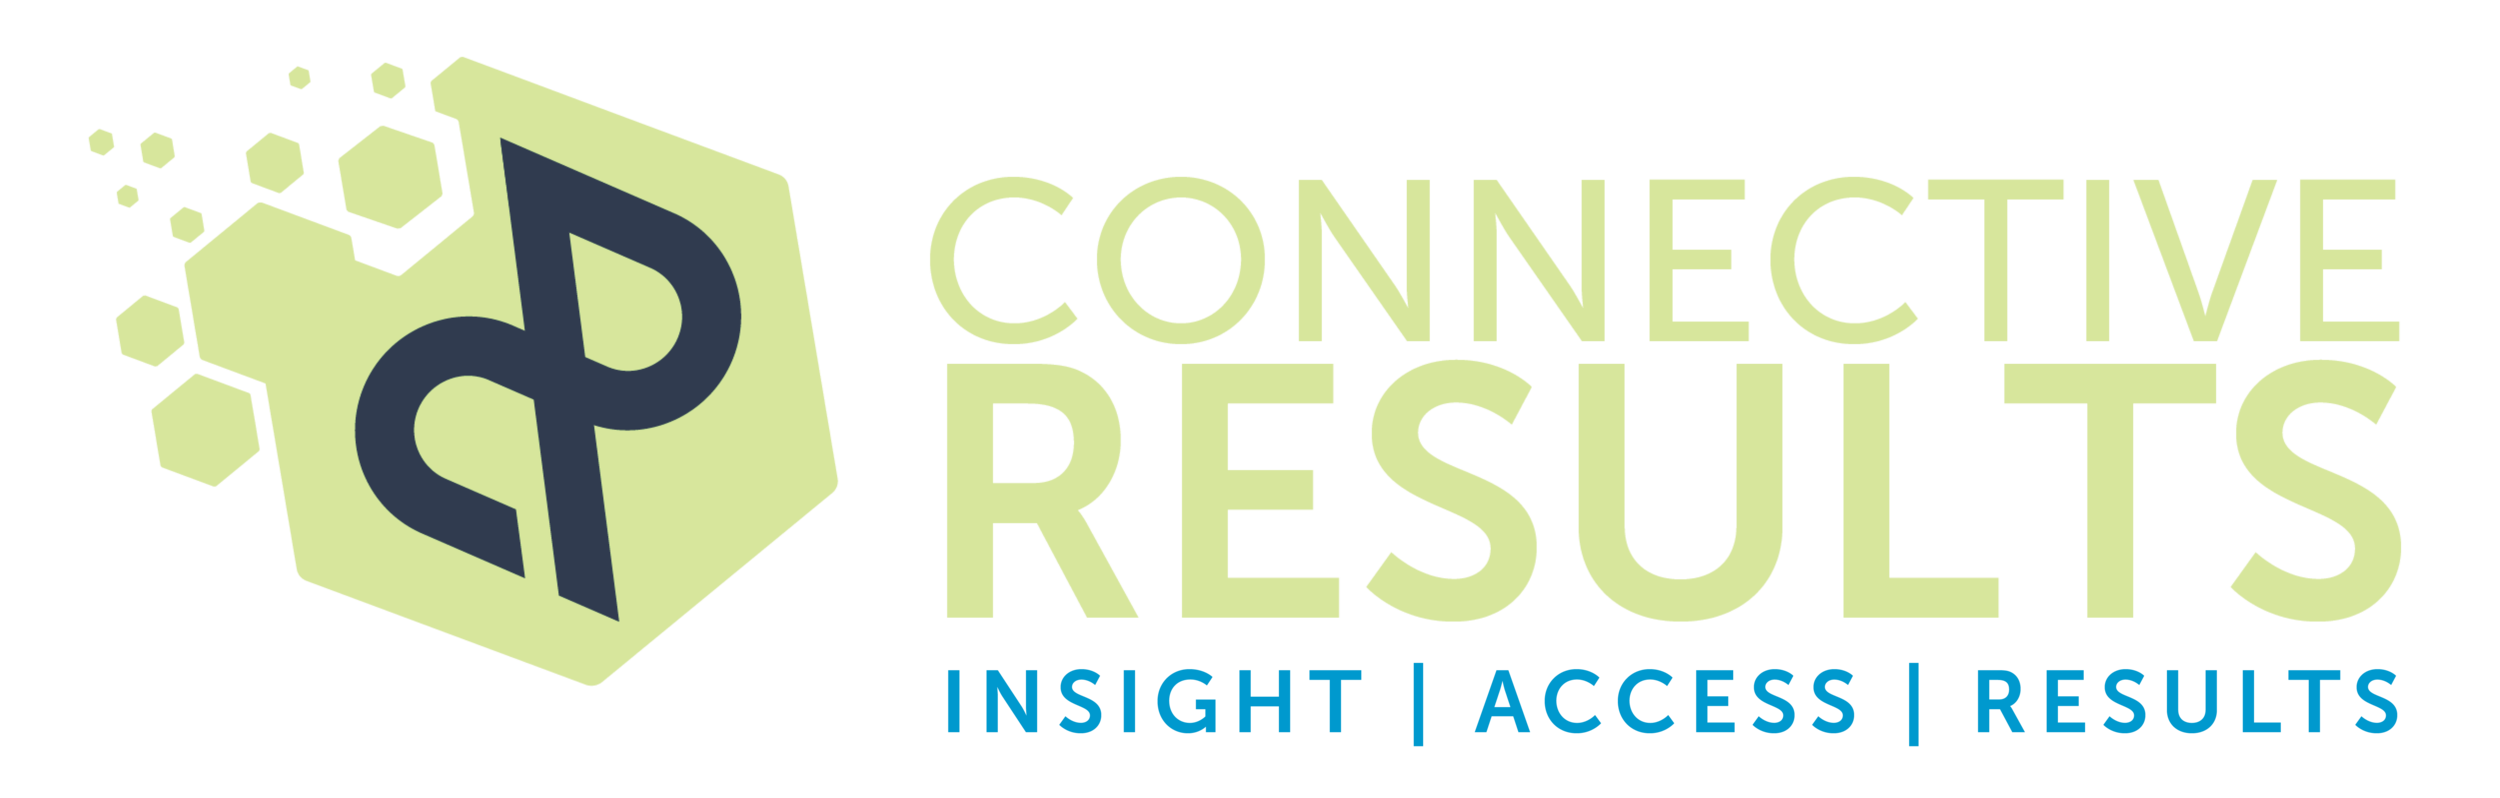 Connective Results Logo - INSIGHT | ACCESS | RESULTS